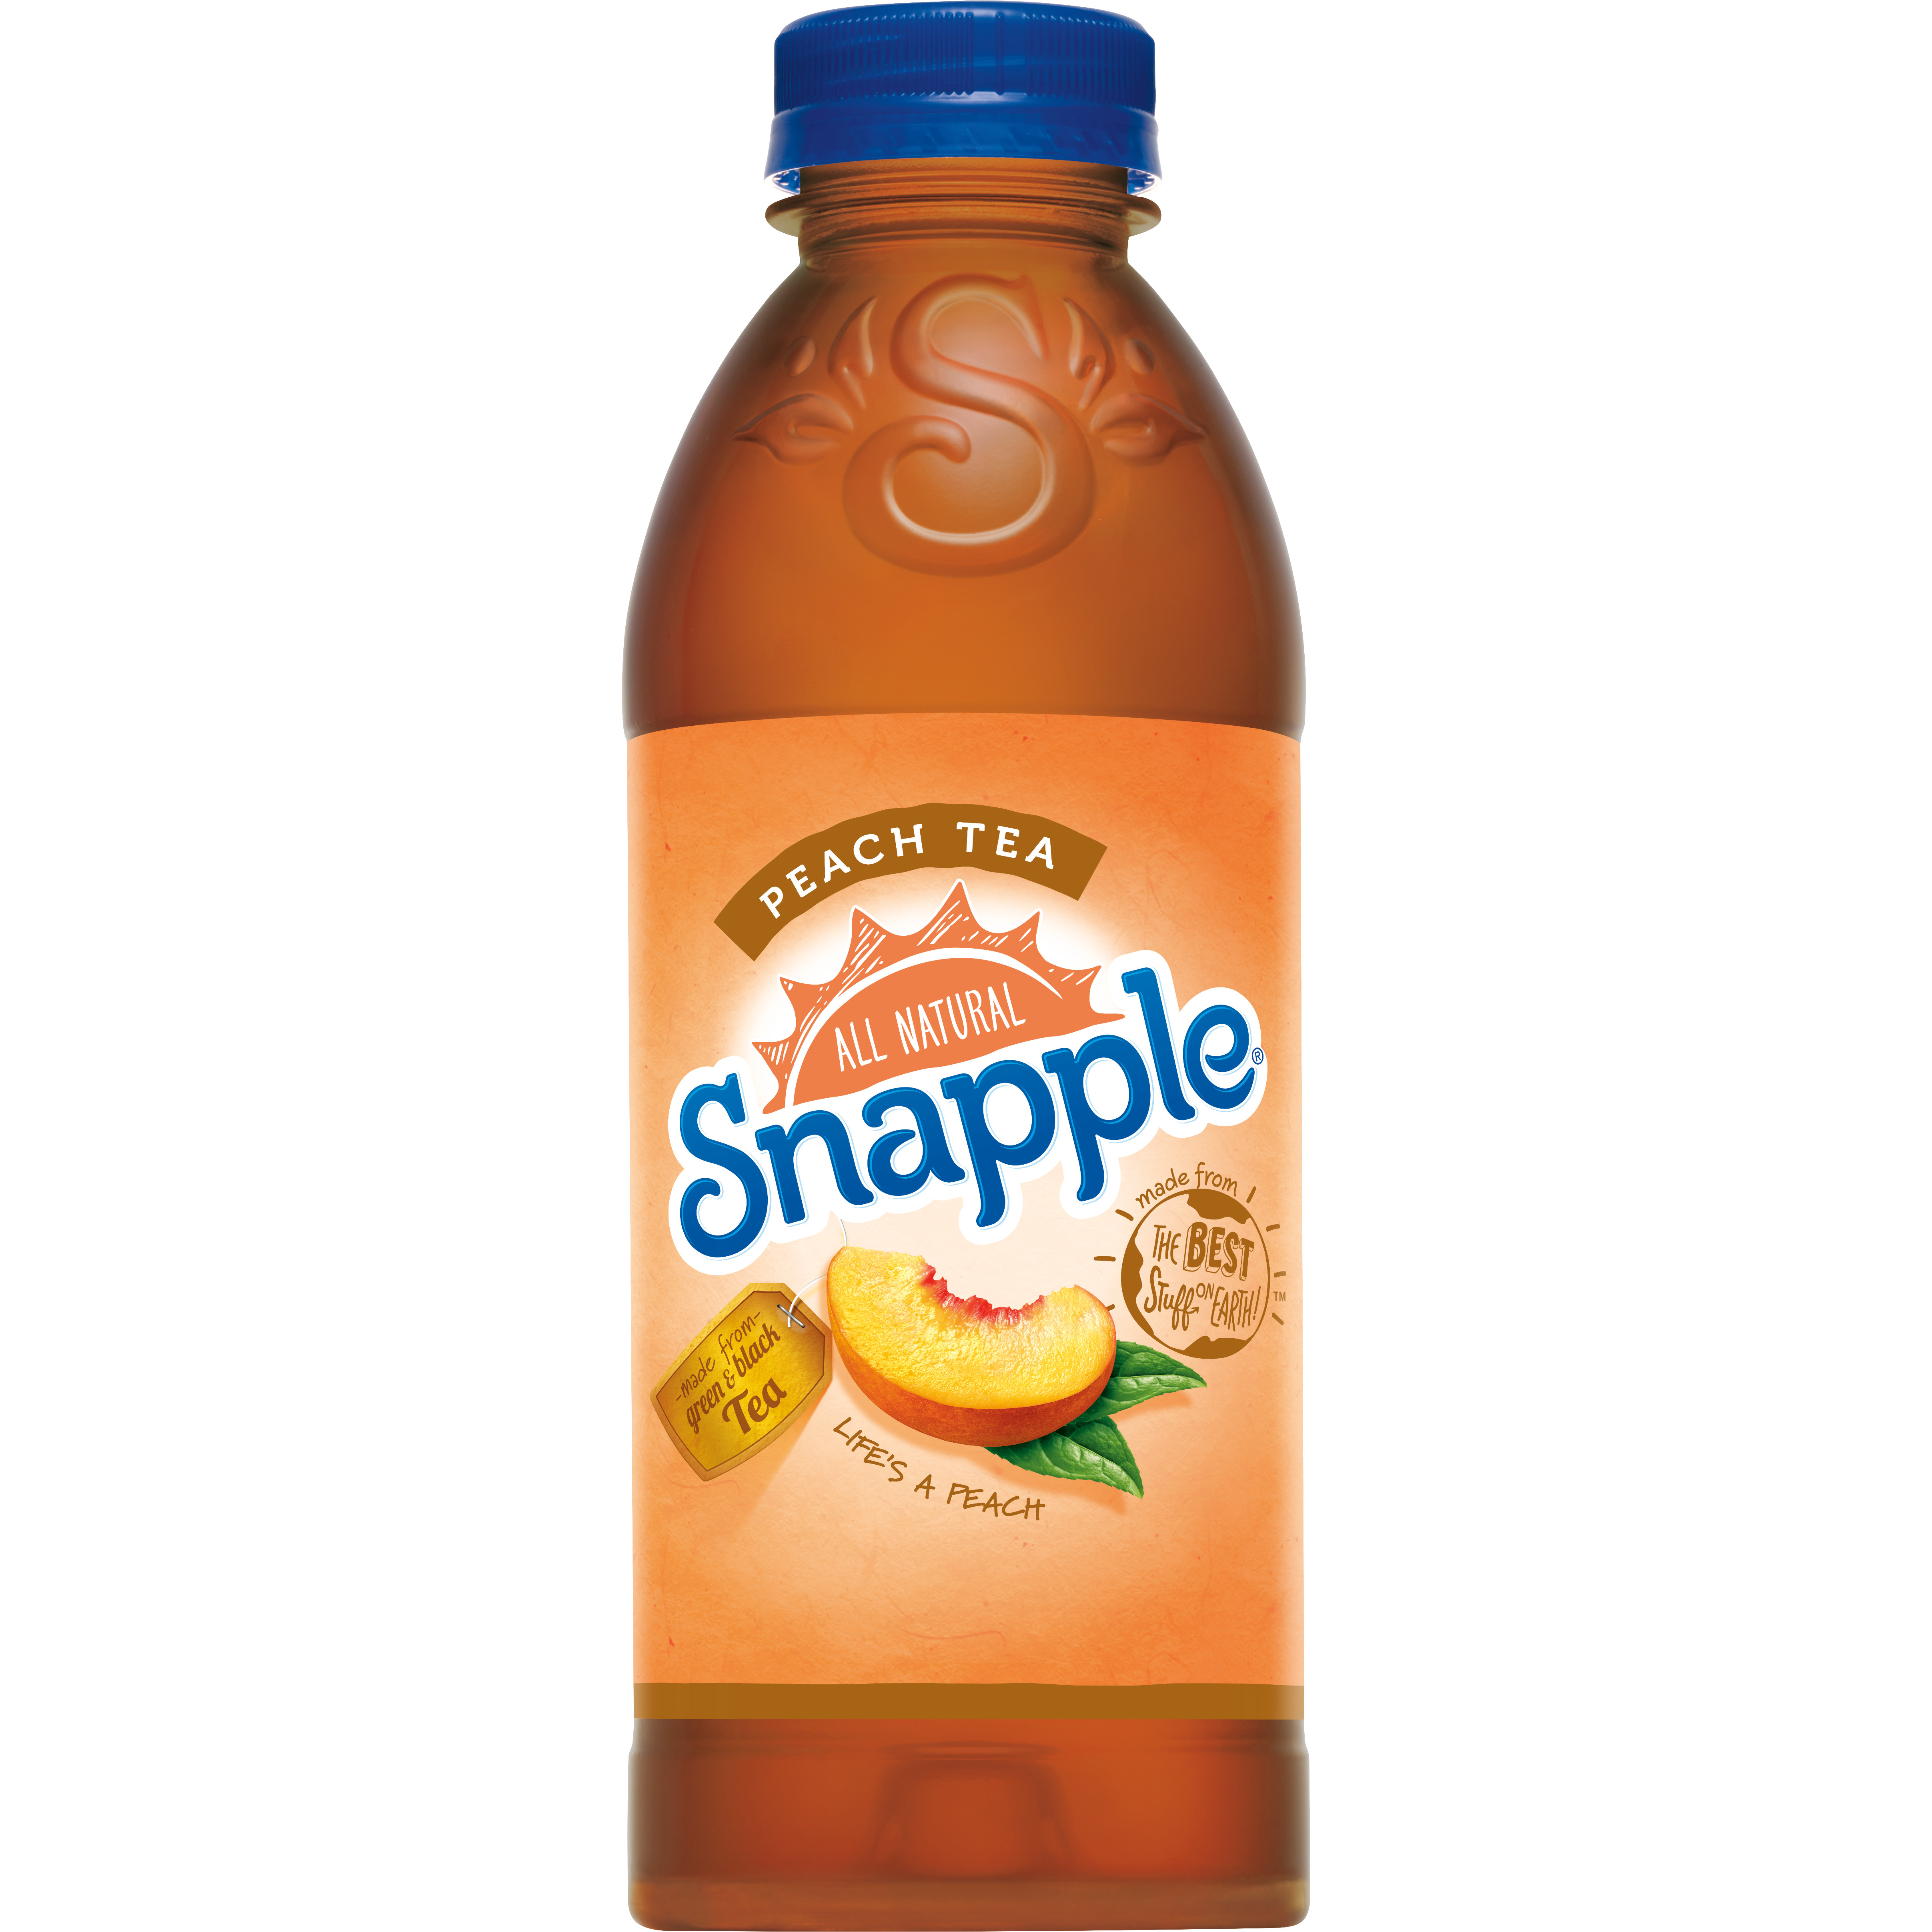 Snapple Peach Tea, 20 fl oz